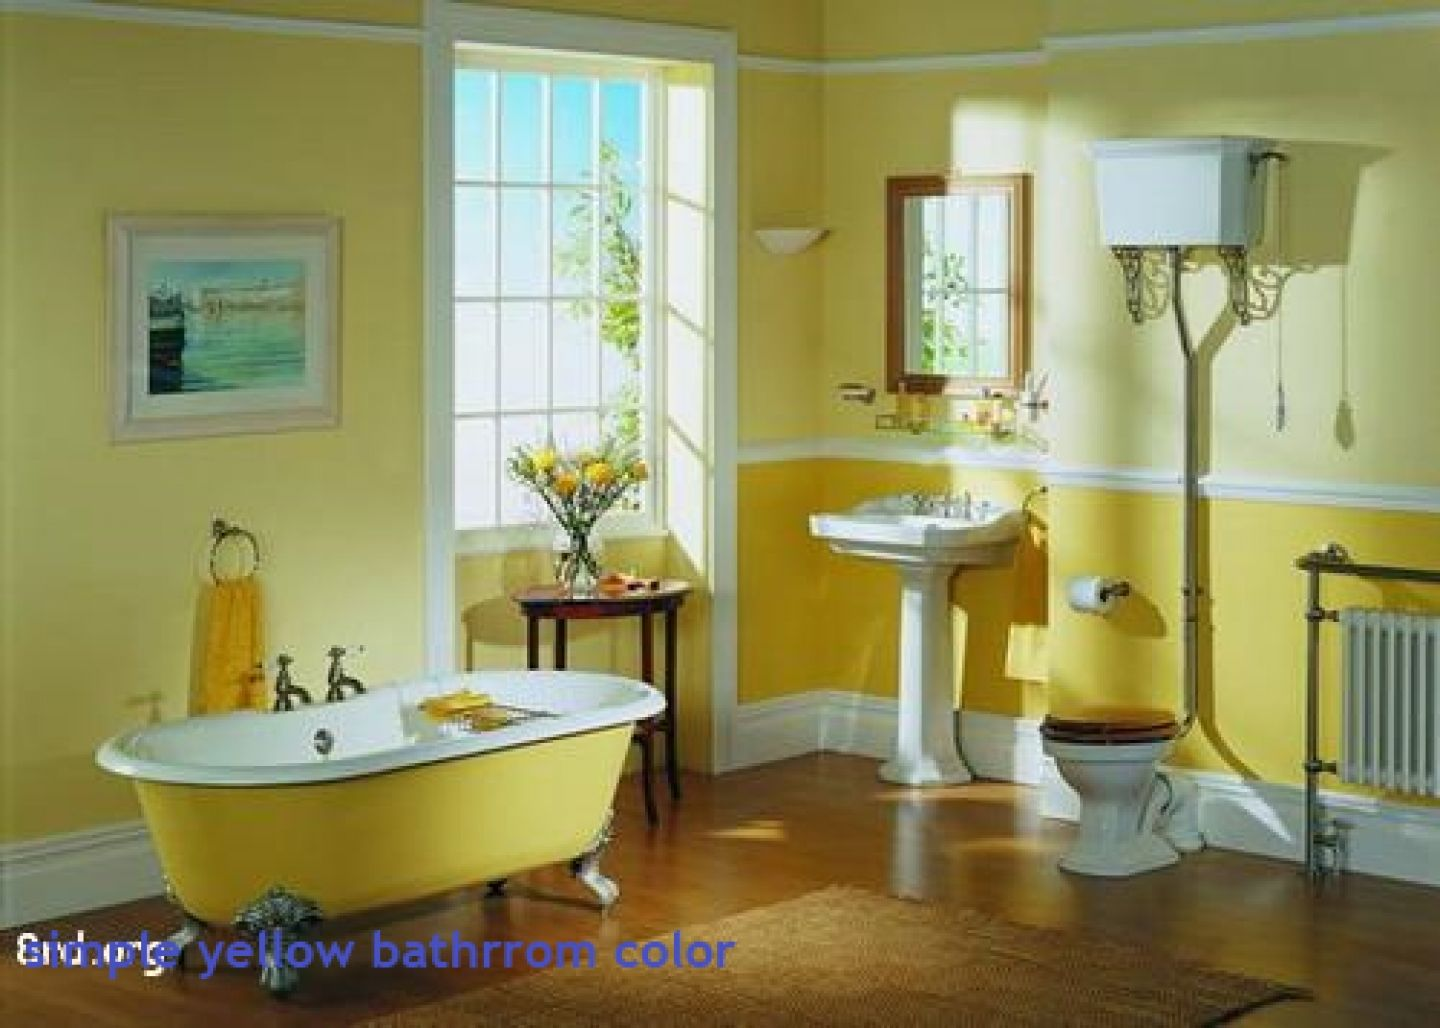 Fancy Paint Colors Bathroom Walls Model - The Wall Art Decorations ...